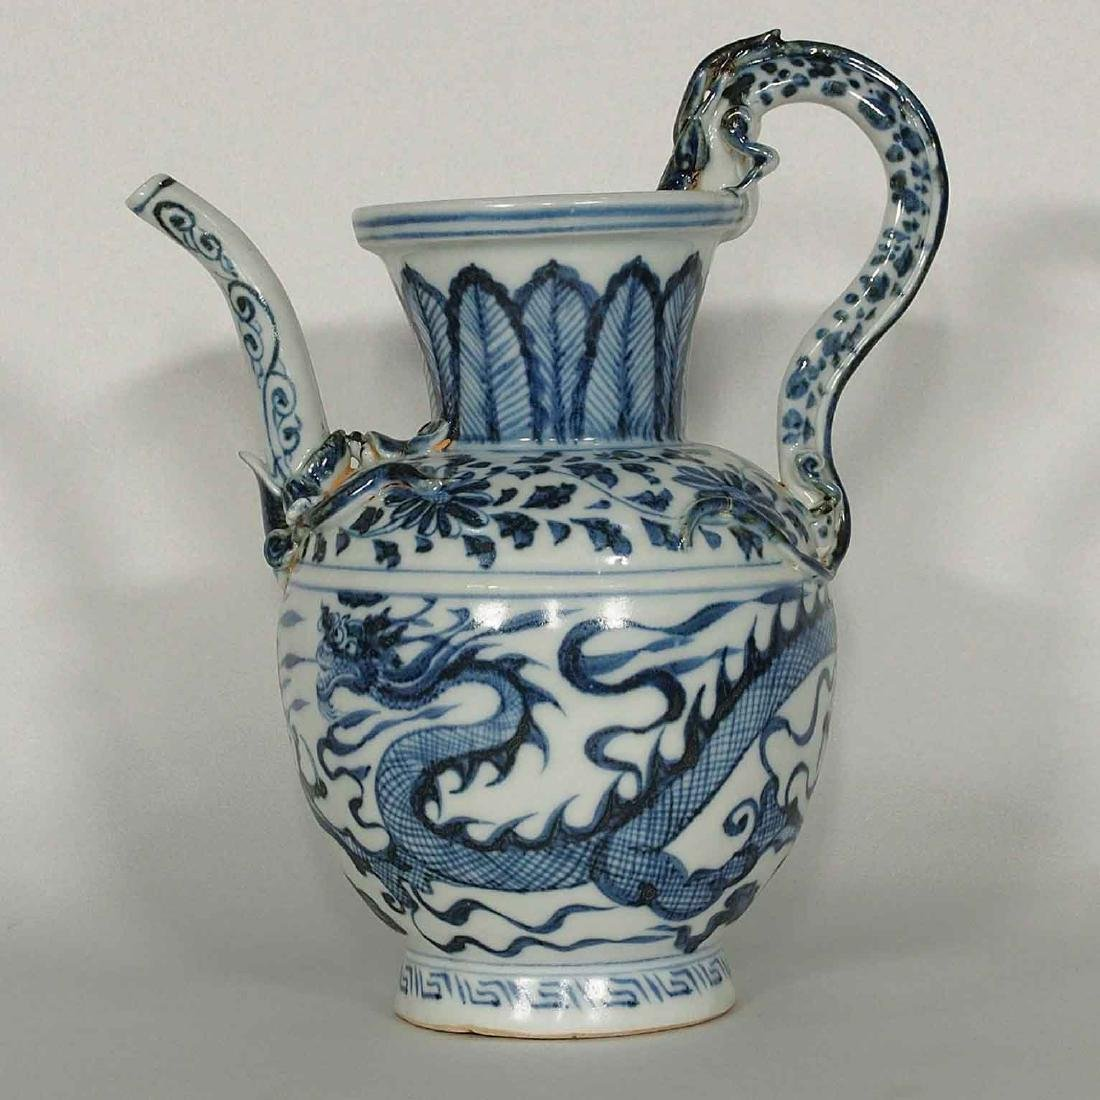 Ewer with Molded Dragon Handle, Yuan Dynasty